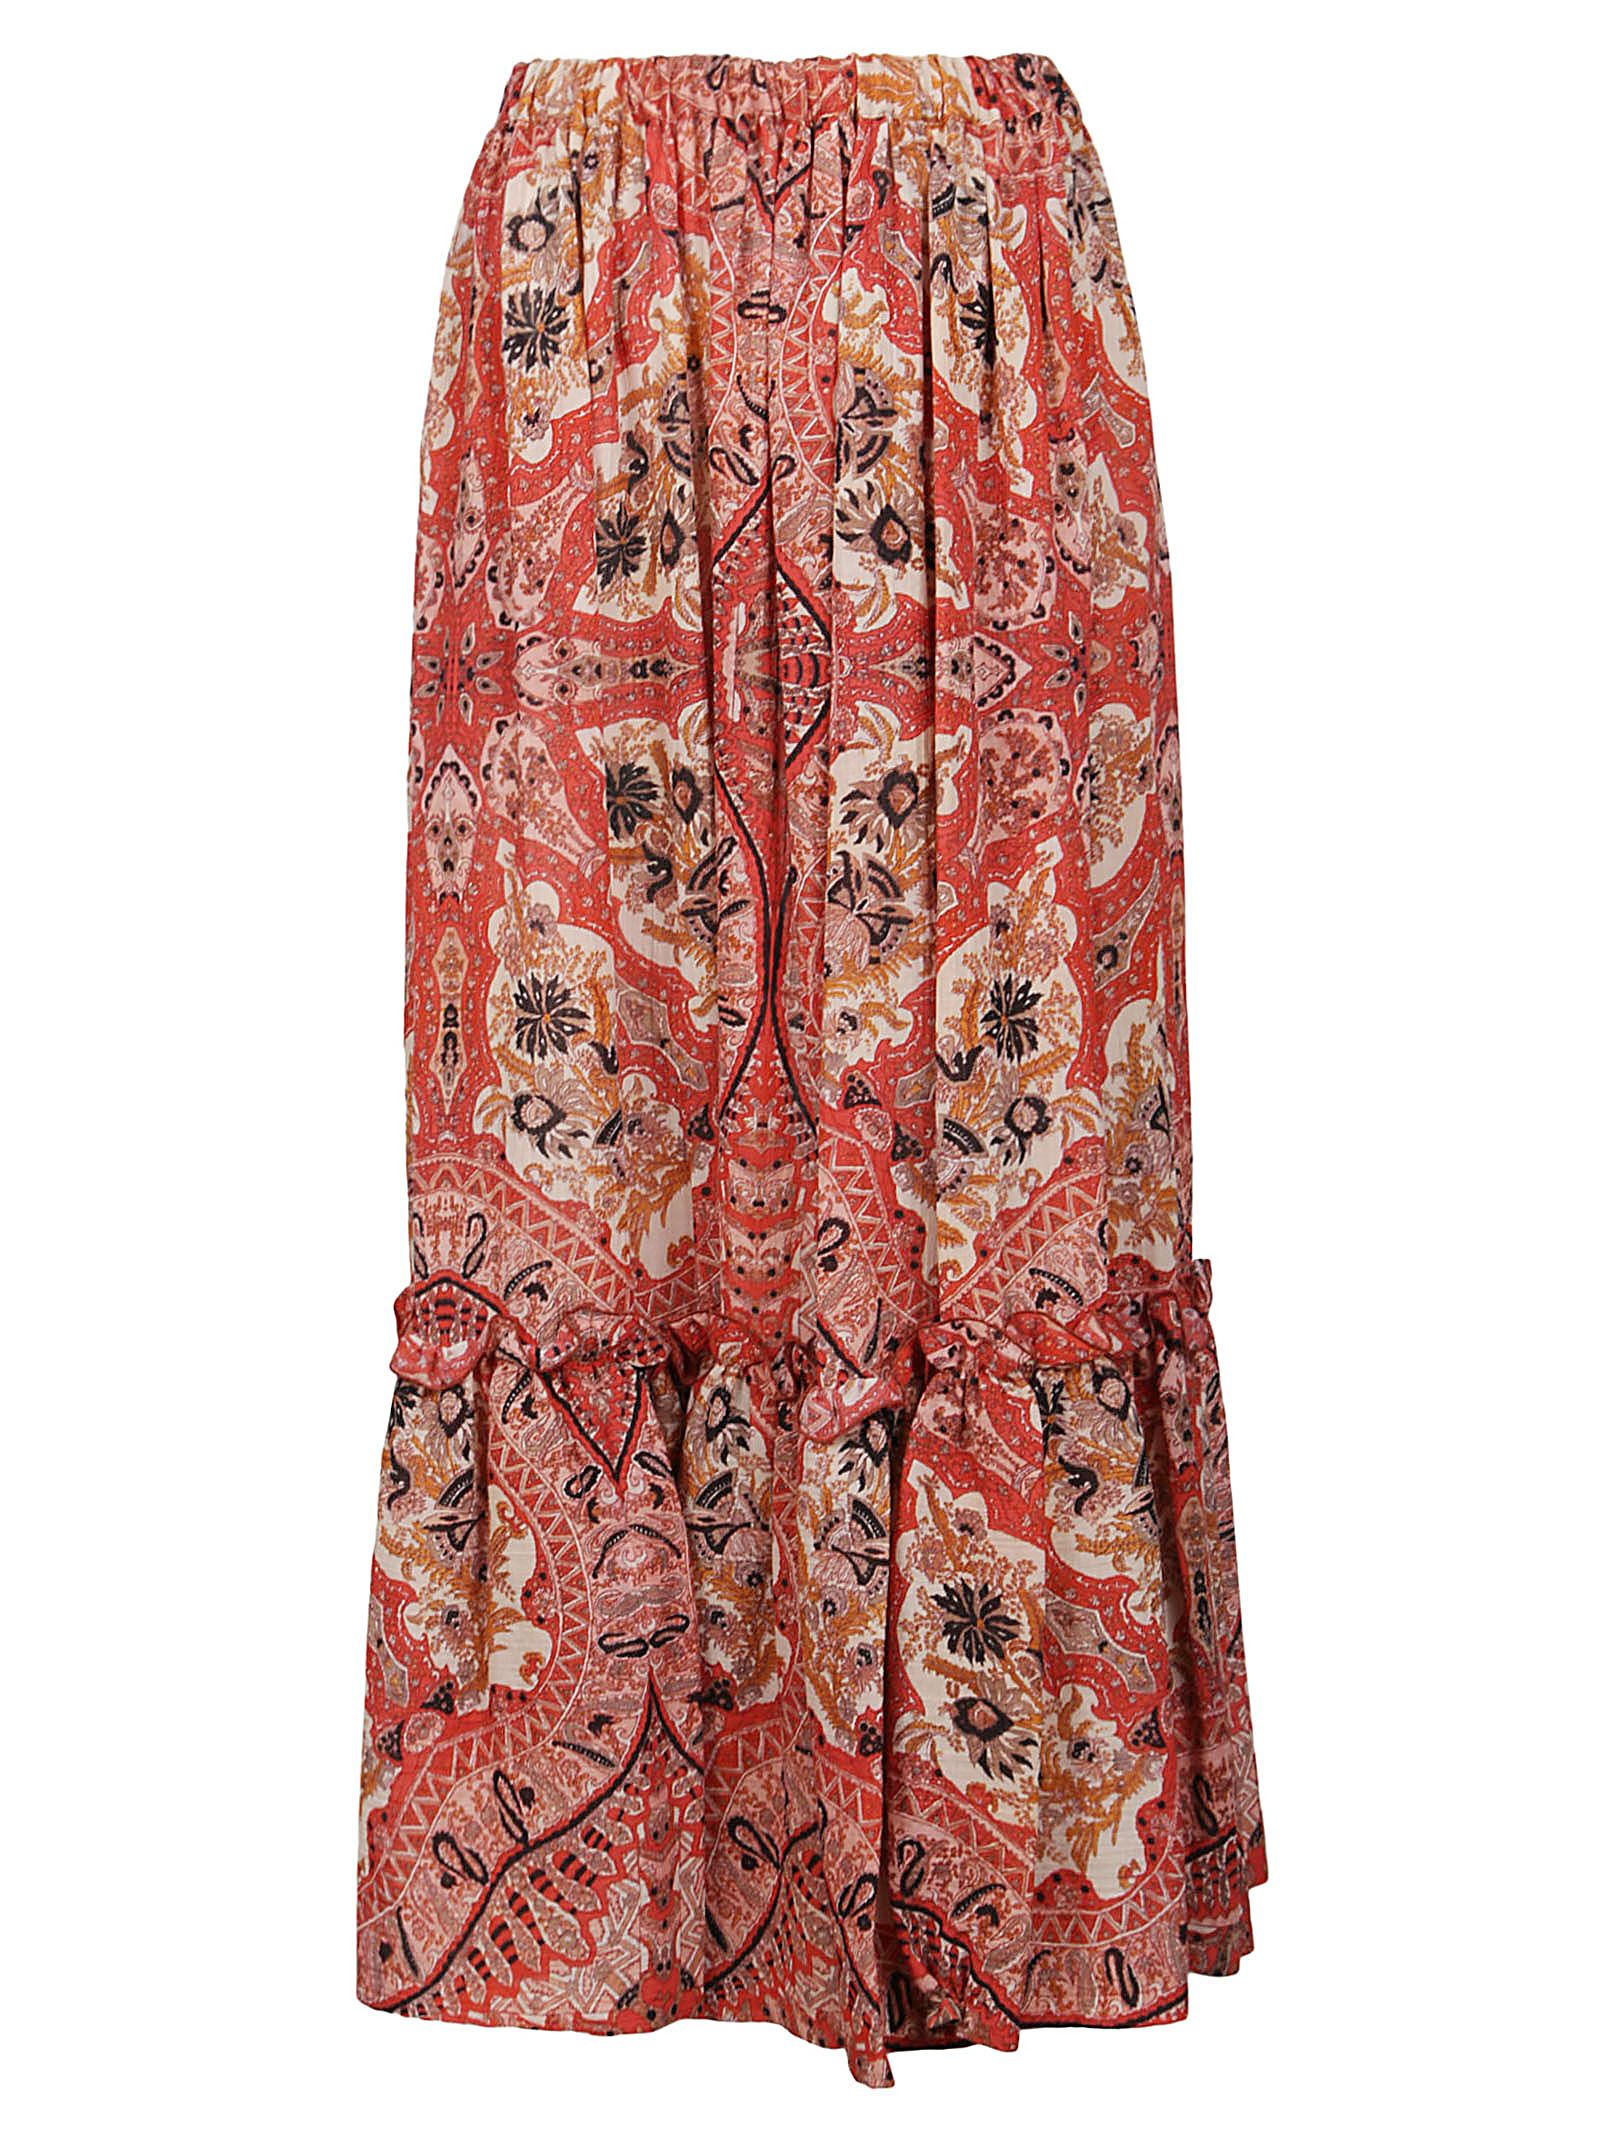 Etro Cottons ETRO WOMEN'S 1415343120600 RED OTHER MATERIALS SKIRT